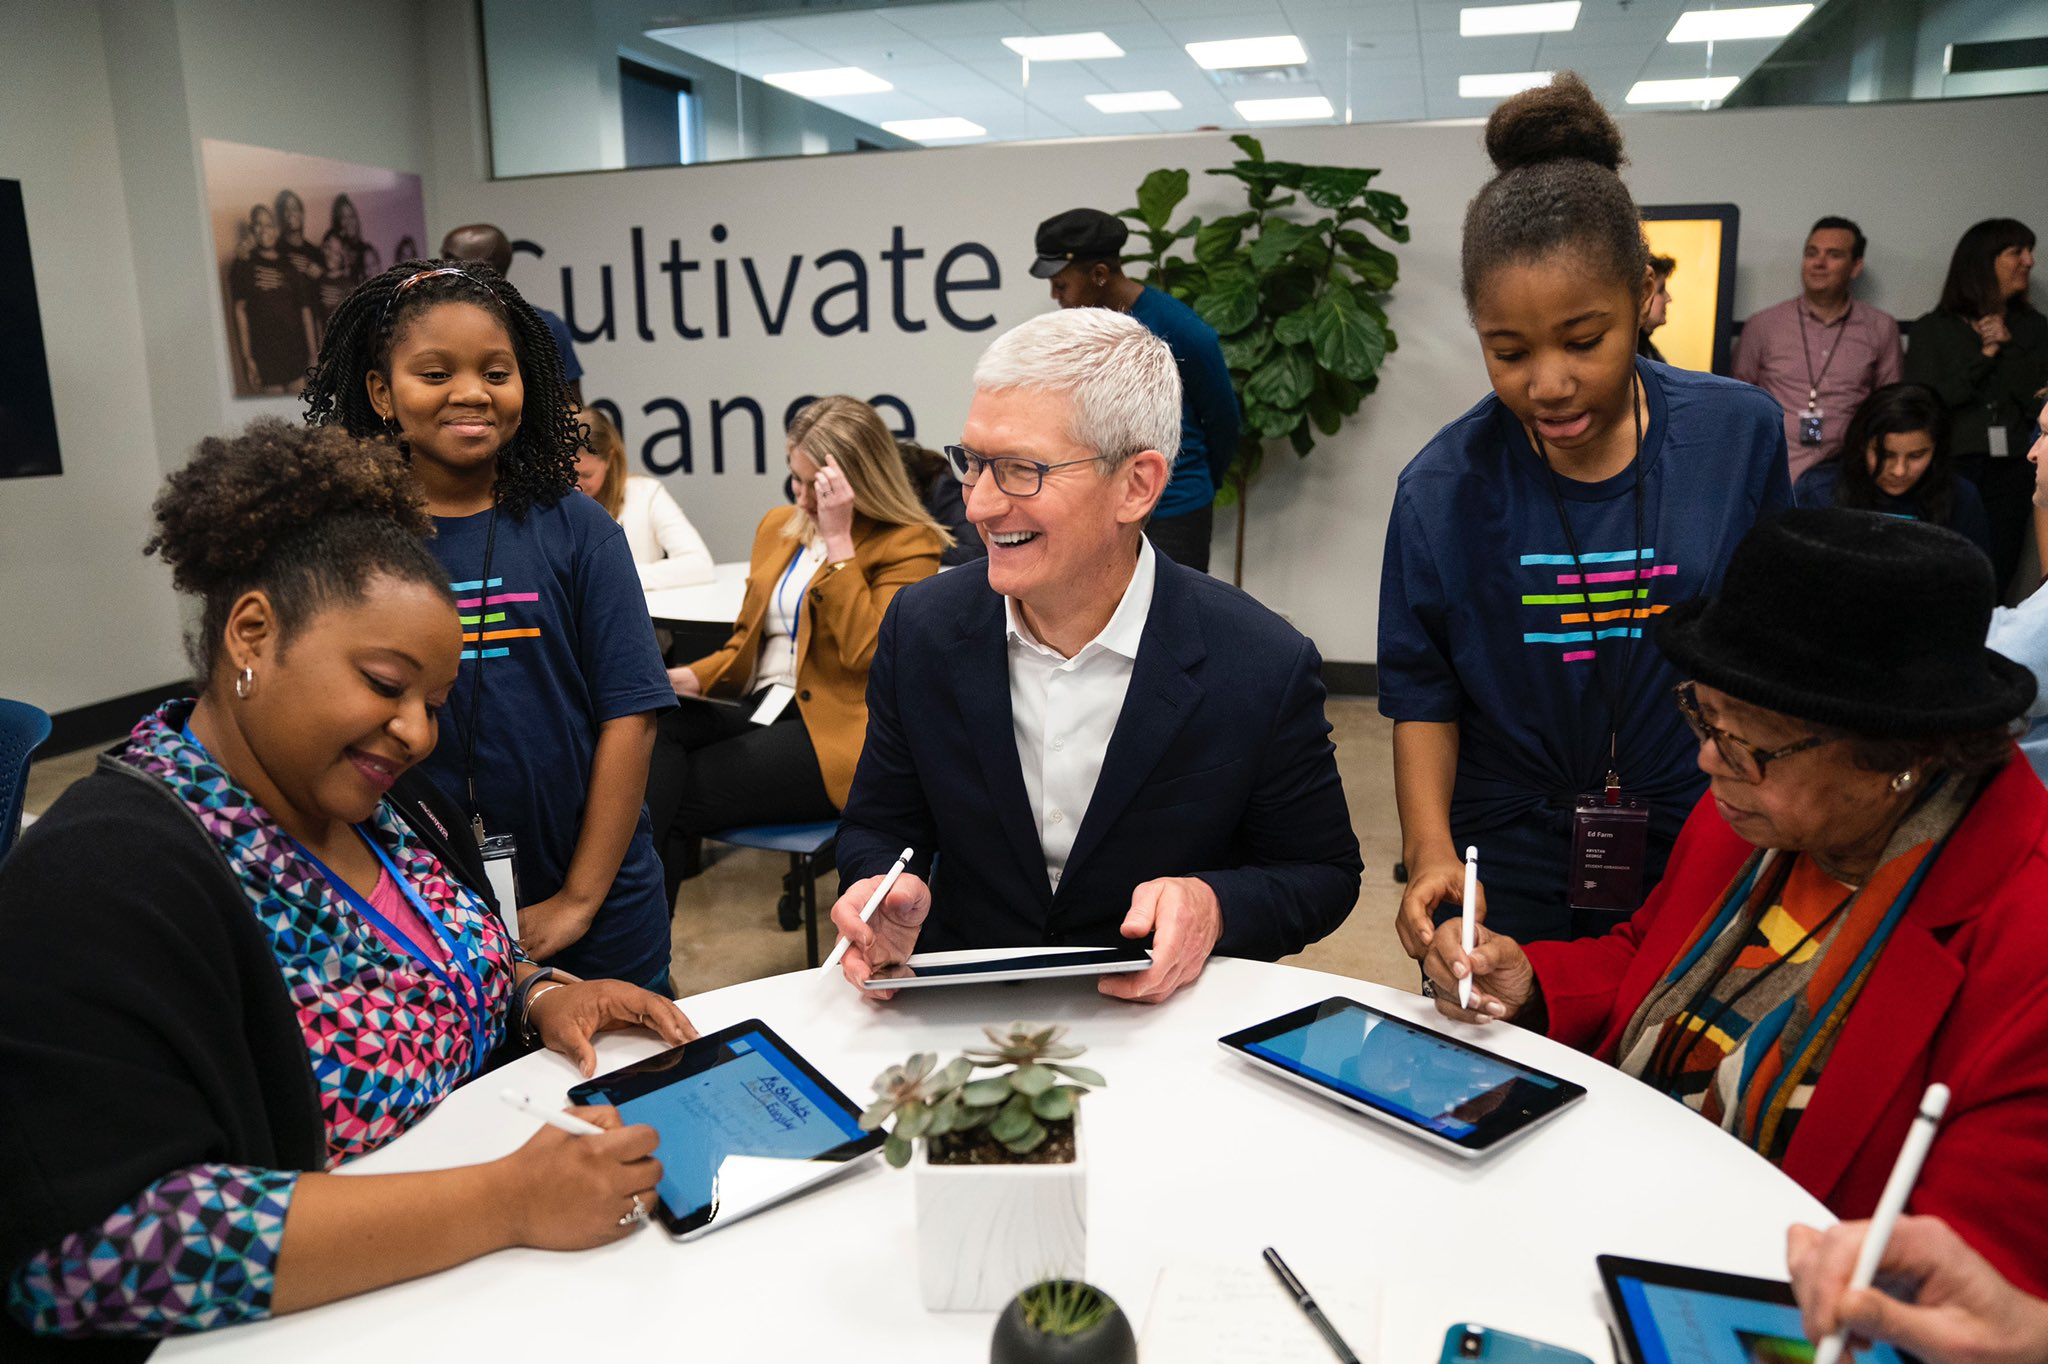 Coding lets students of all ages breathe life into new ideas, solve problems and prepare for the jobs of the future. Honored to join Birmingham's students, teachers and visionary leaders in opening Ed Farm — a new education hub where students can connect, learn and create! https://t.co/4tbnuwzI9K